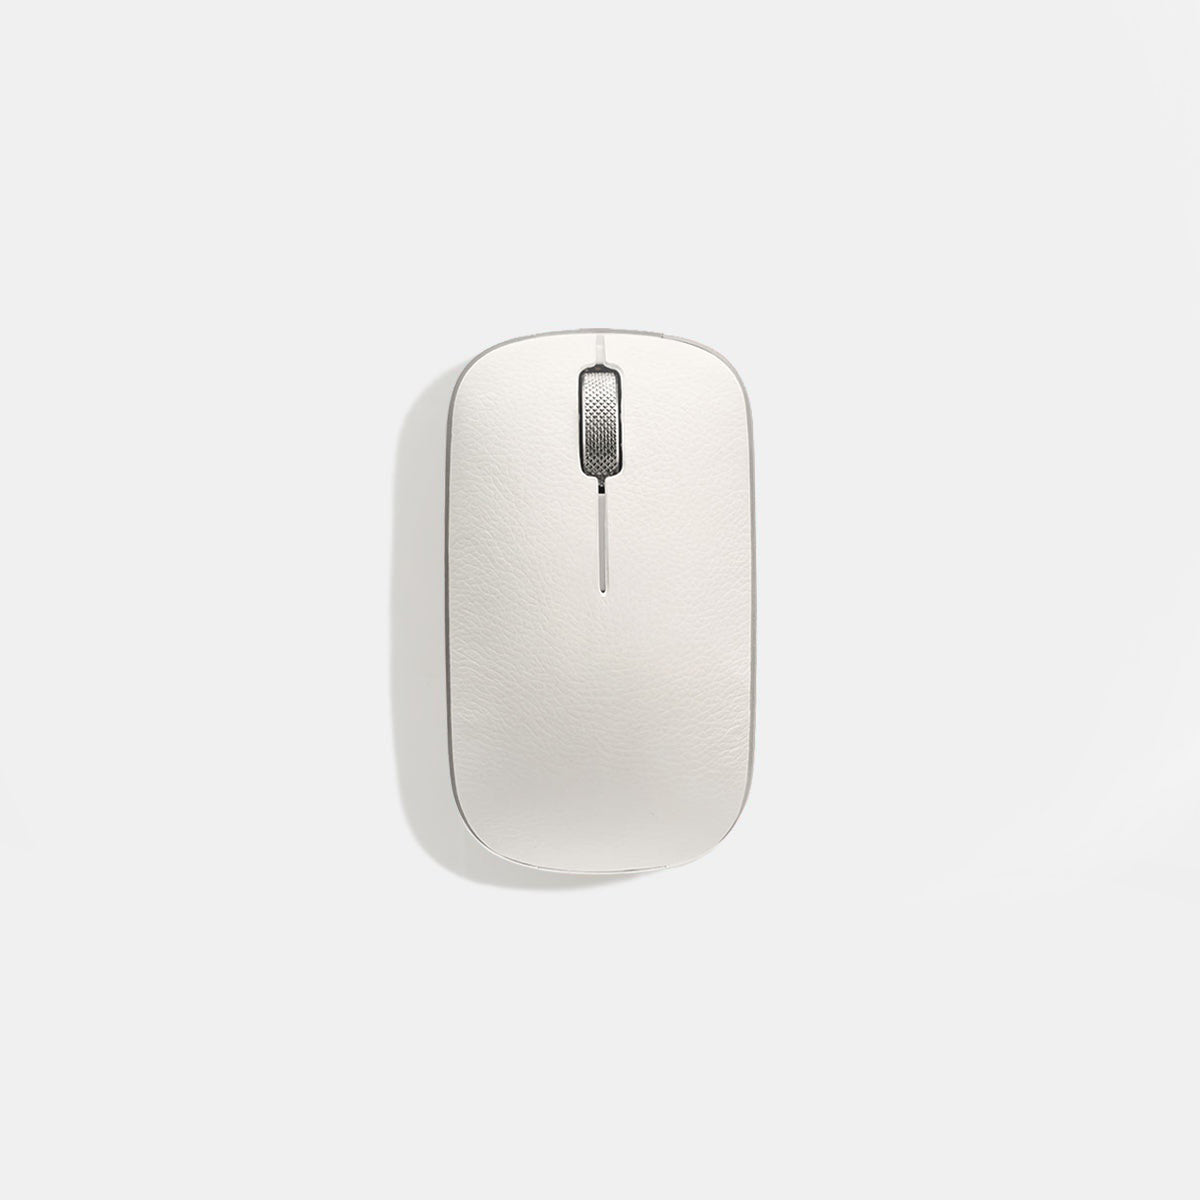 RETRO CLASSIC MOUSE (MAPLE)